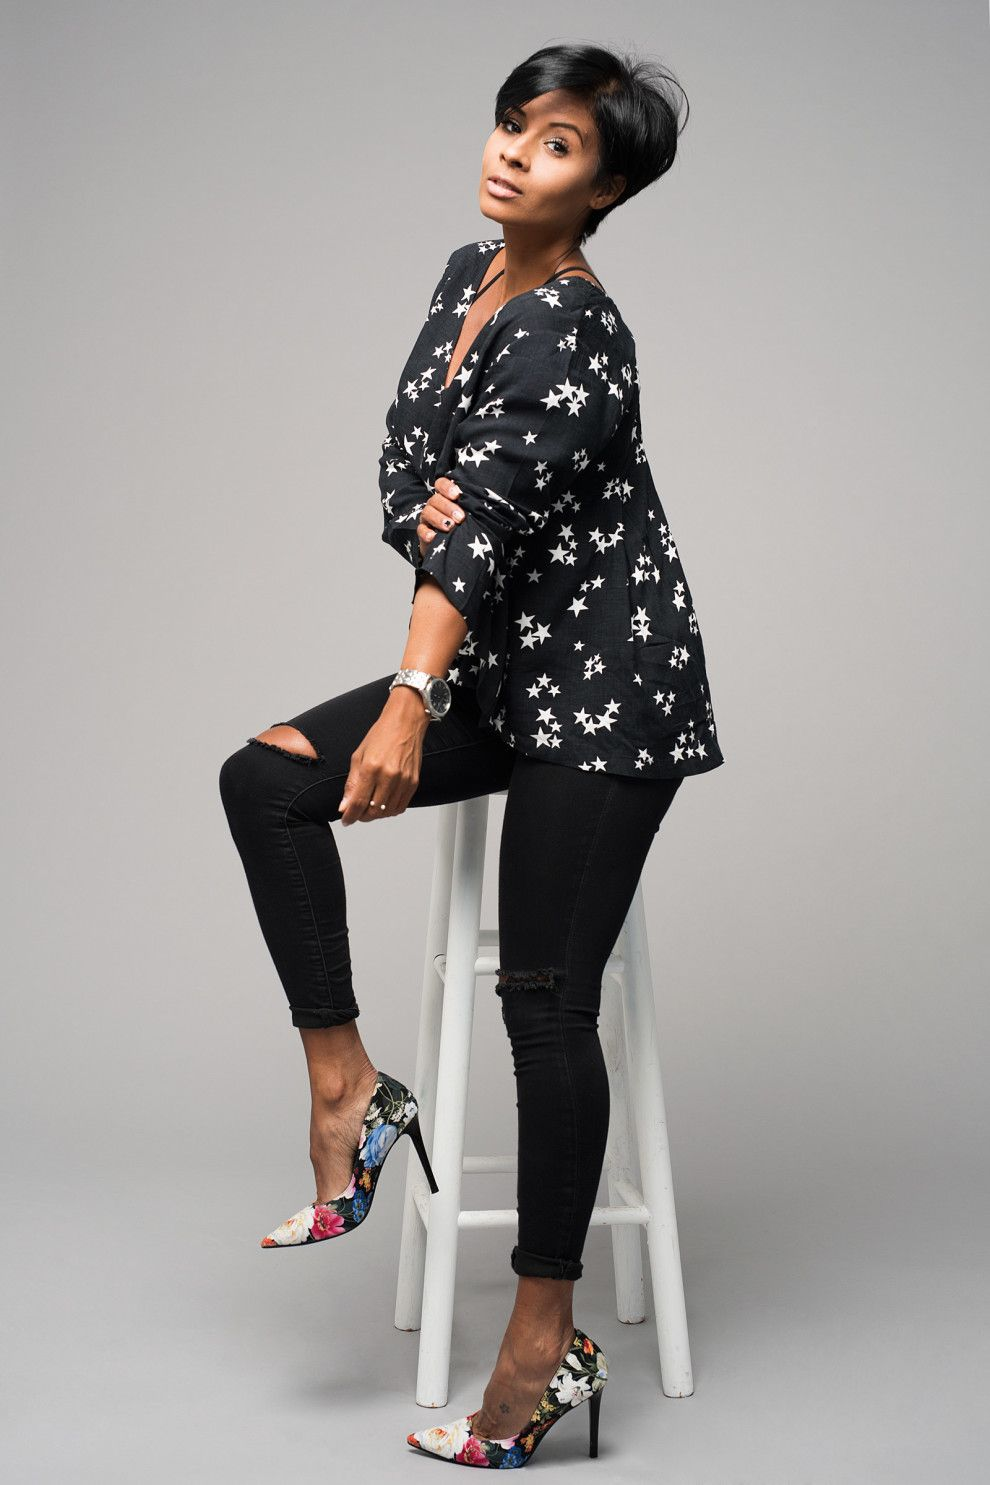 Kyrzayda Rodriguez Classy Outfits Stylish Outfits Fall Outfits Work Outfits Chic Fashionista